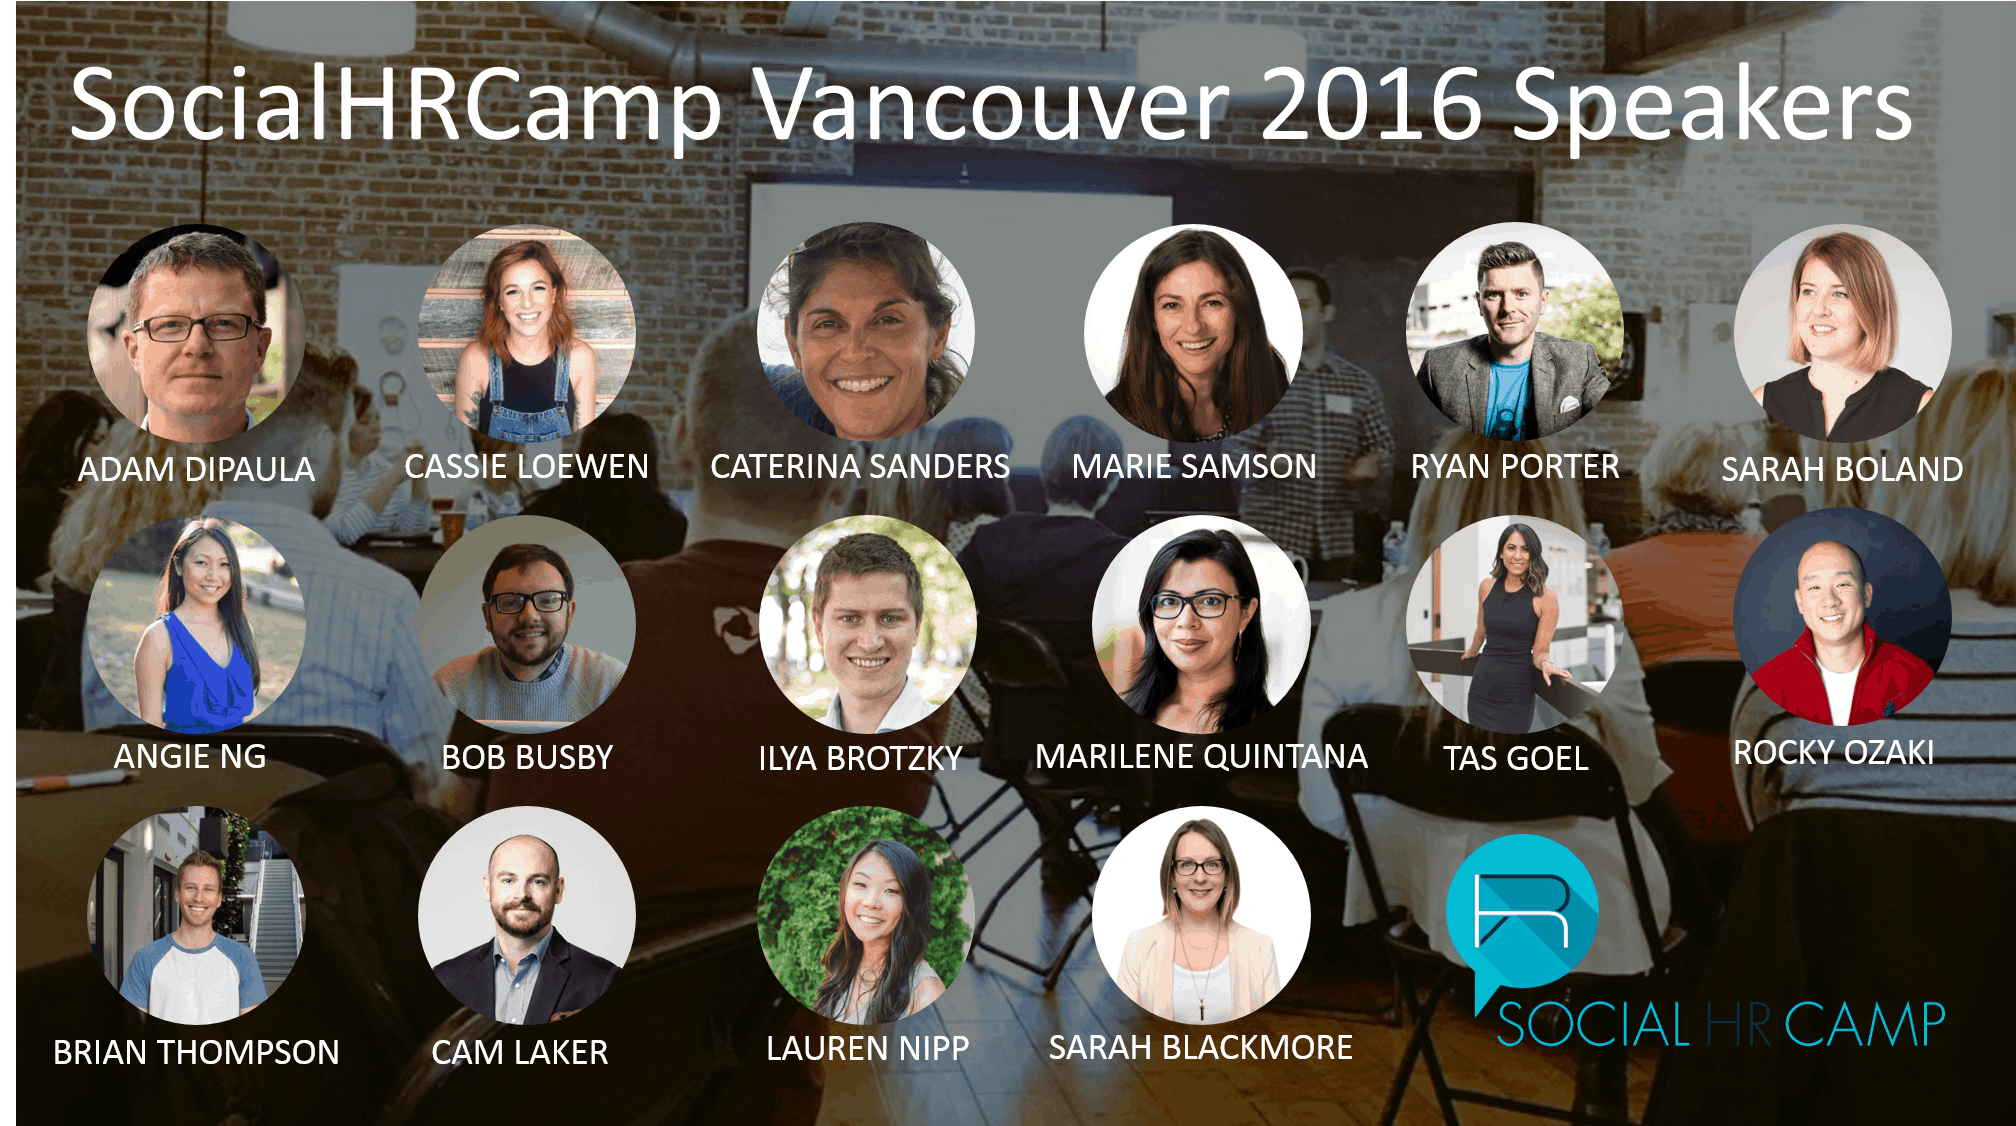 SocialHRCamp Vancouver 2016 Speakers SHRC16